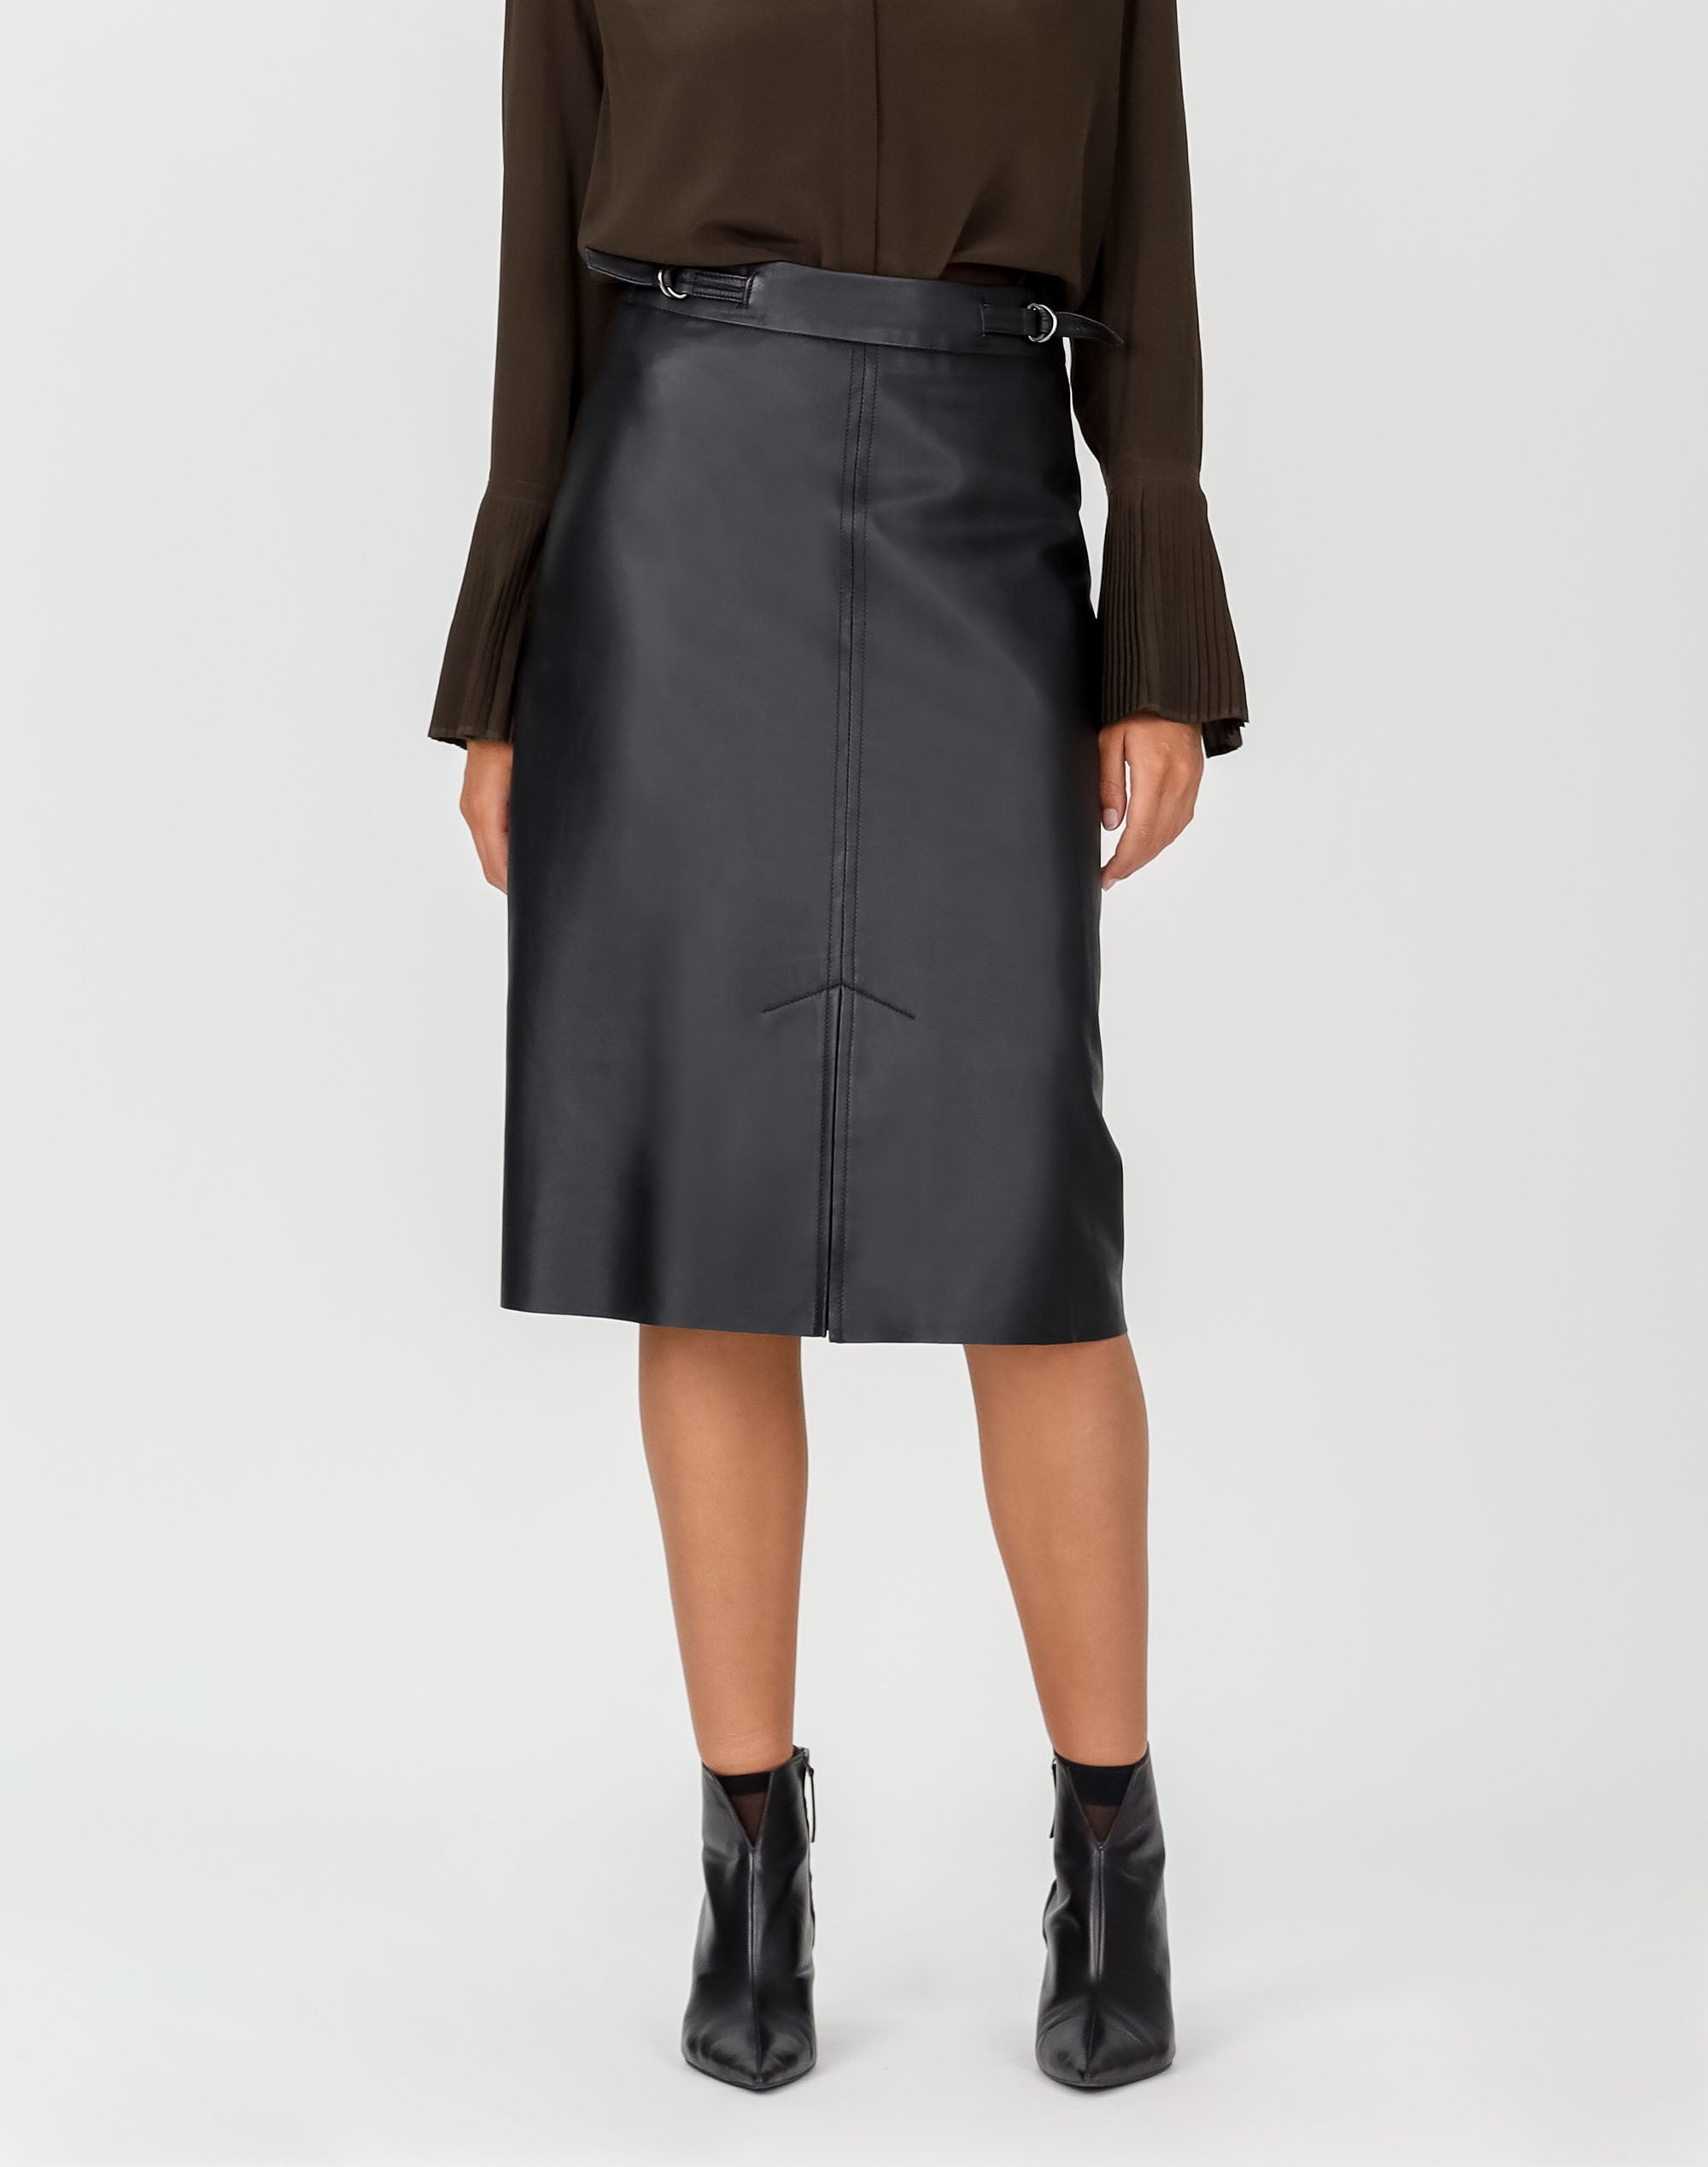 Tab Detail Leather Skirt